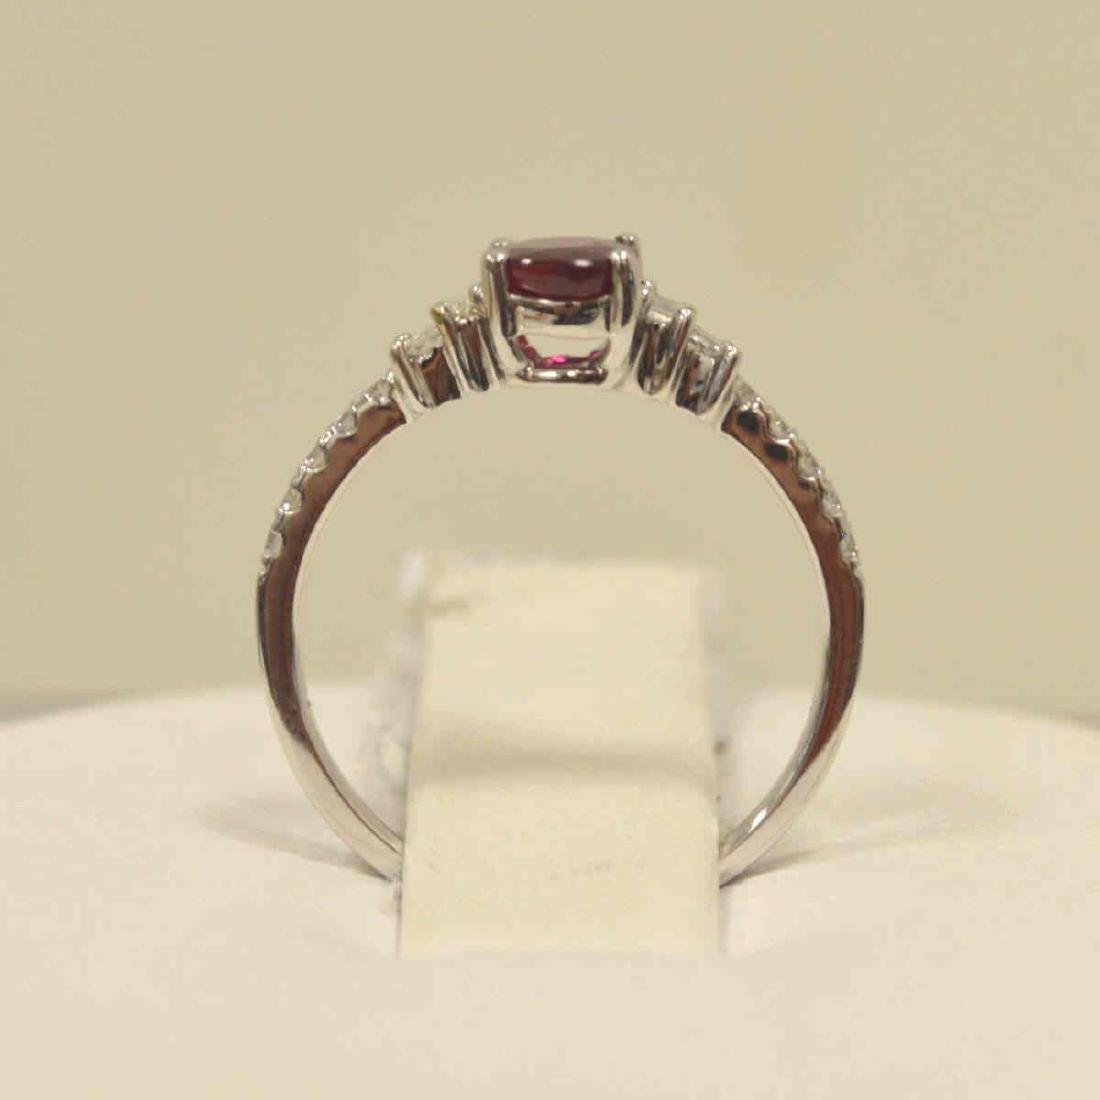 18kt white gold ruby and diamond ring - 3